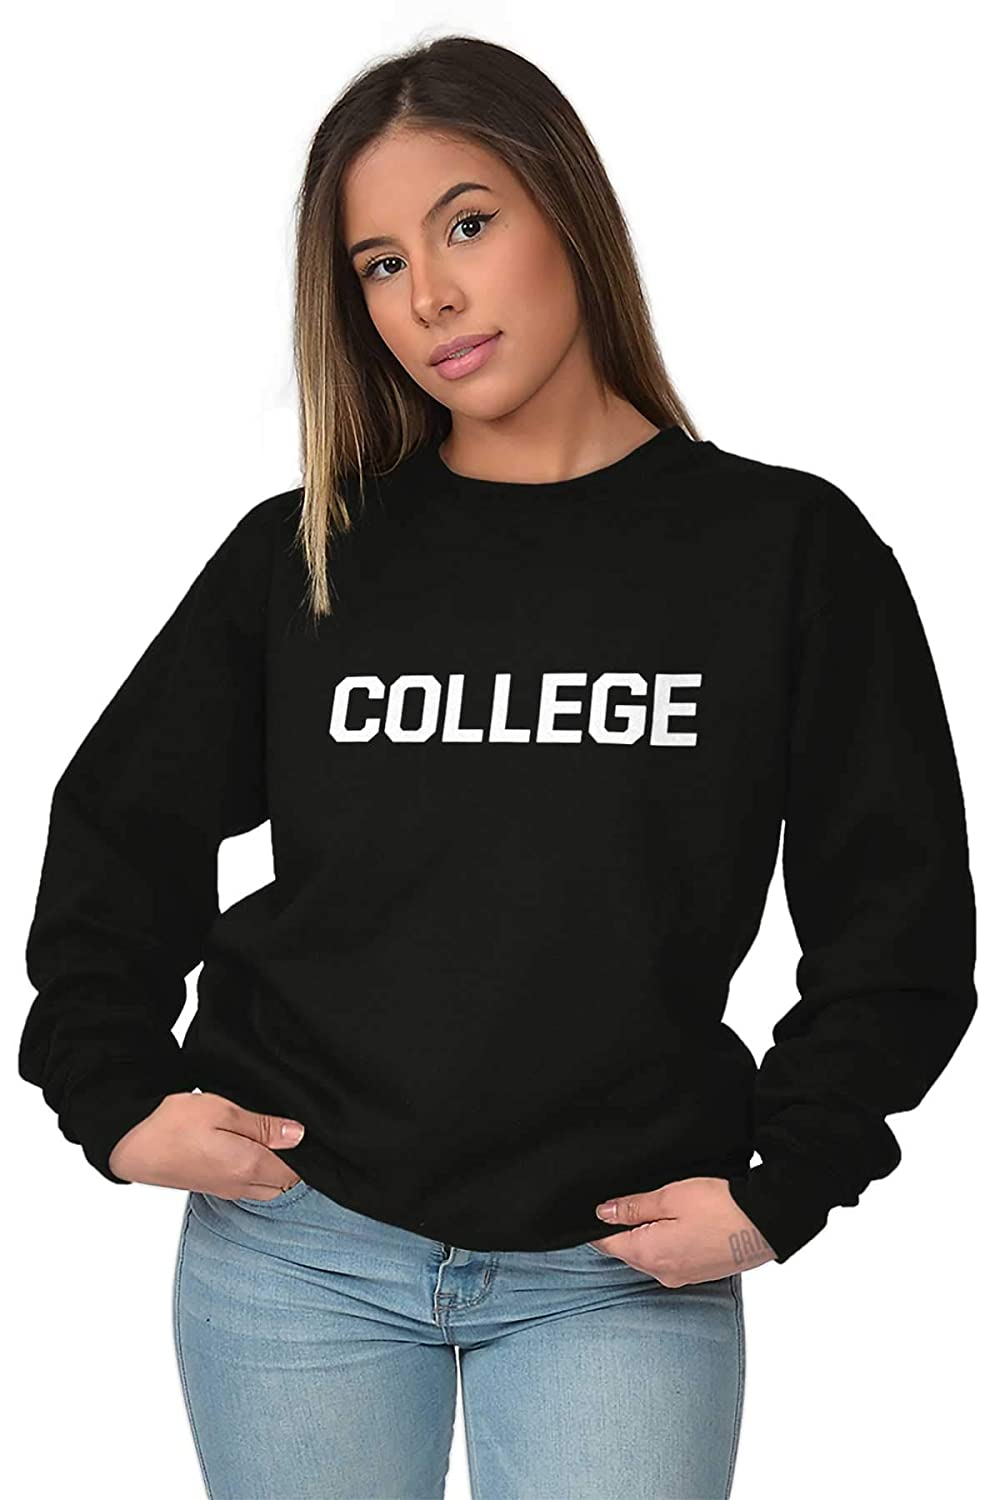 288c2a85 Amazon.com: Brisco Brands College University School Spirit Funny Crewneck  Sweatshirt: Clothing